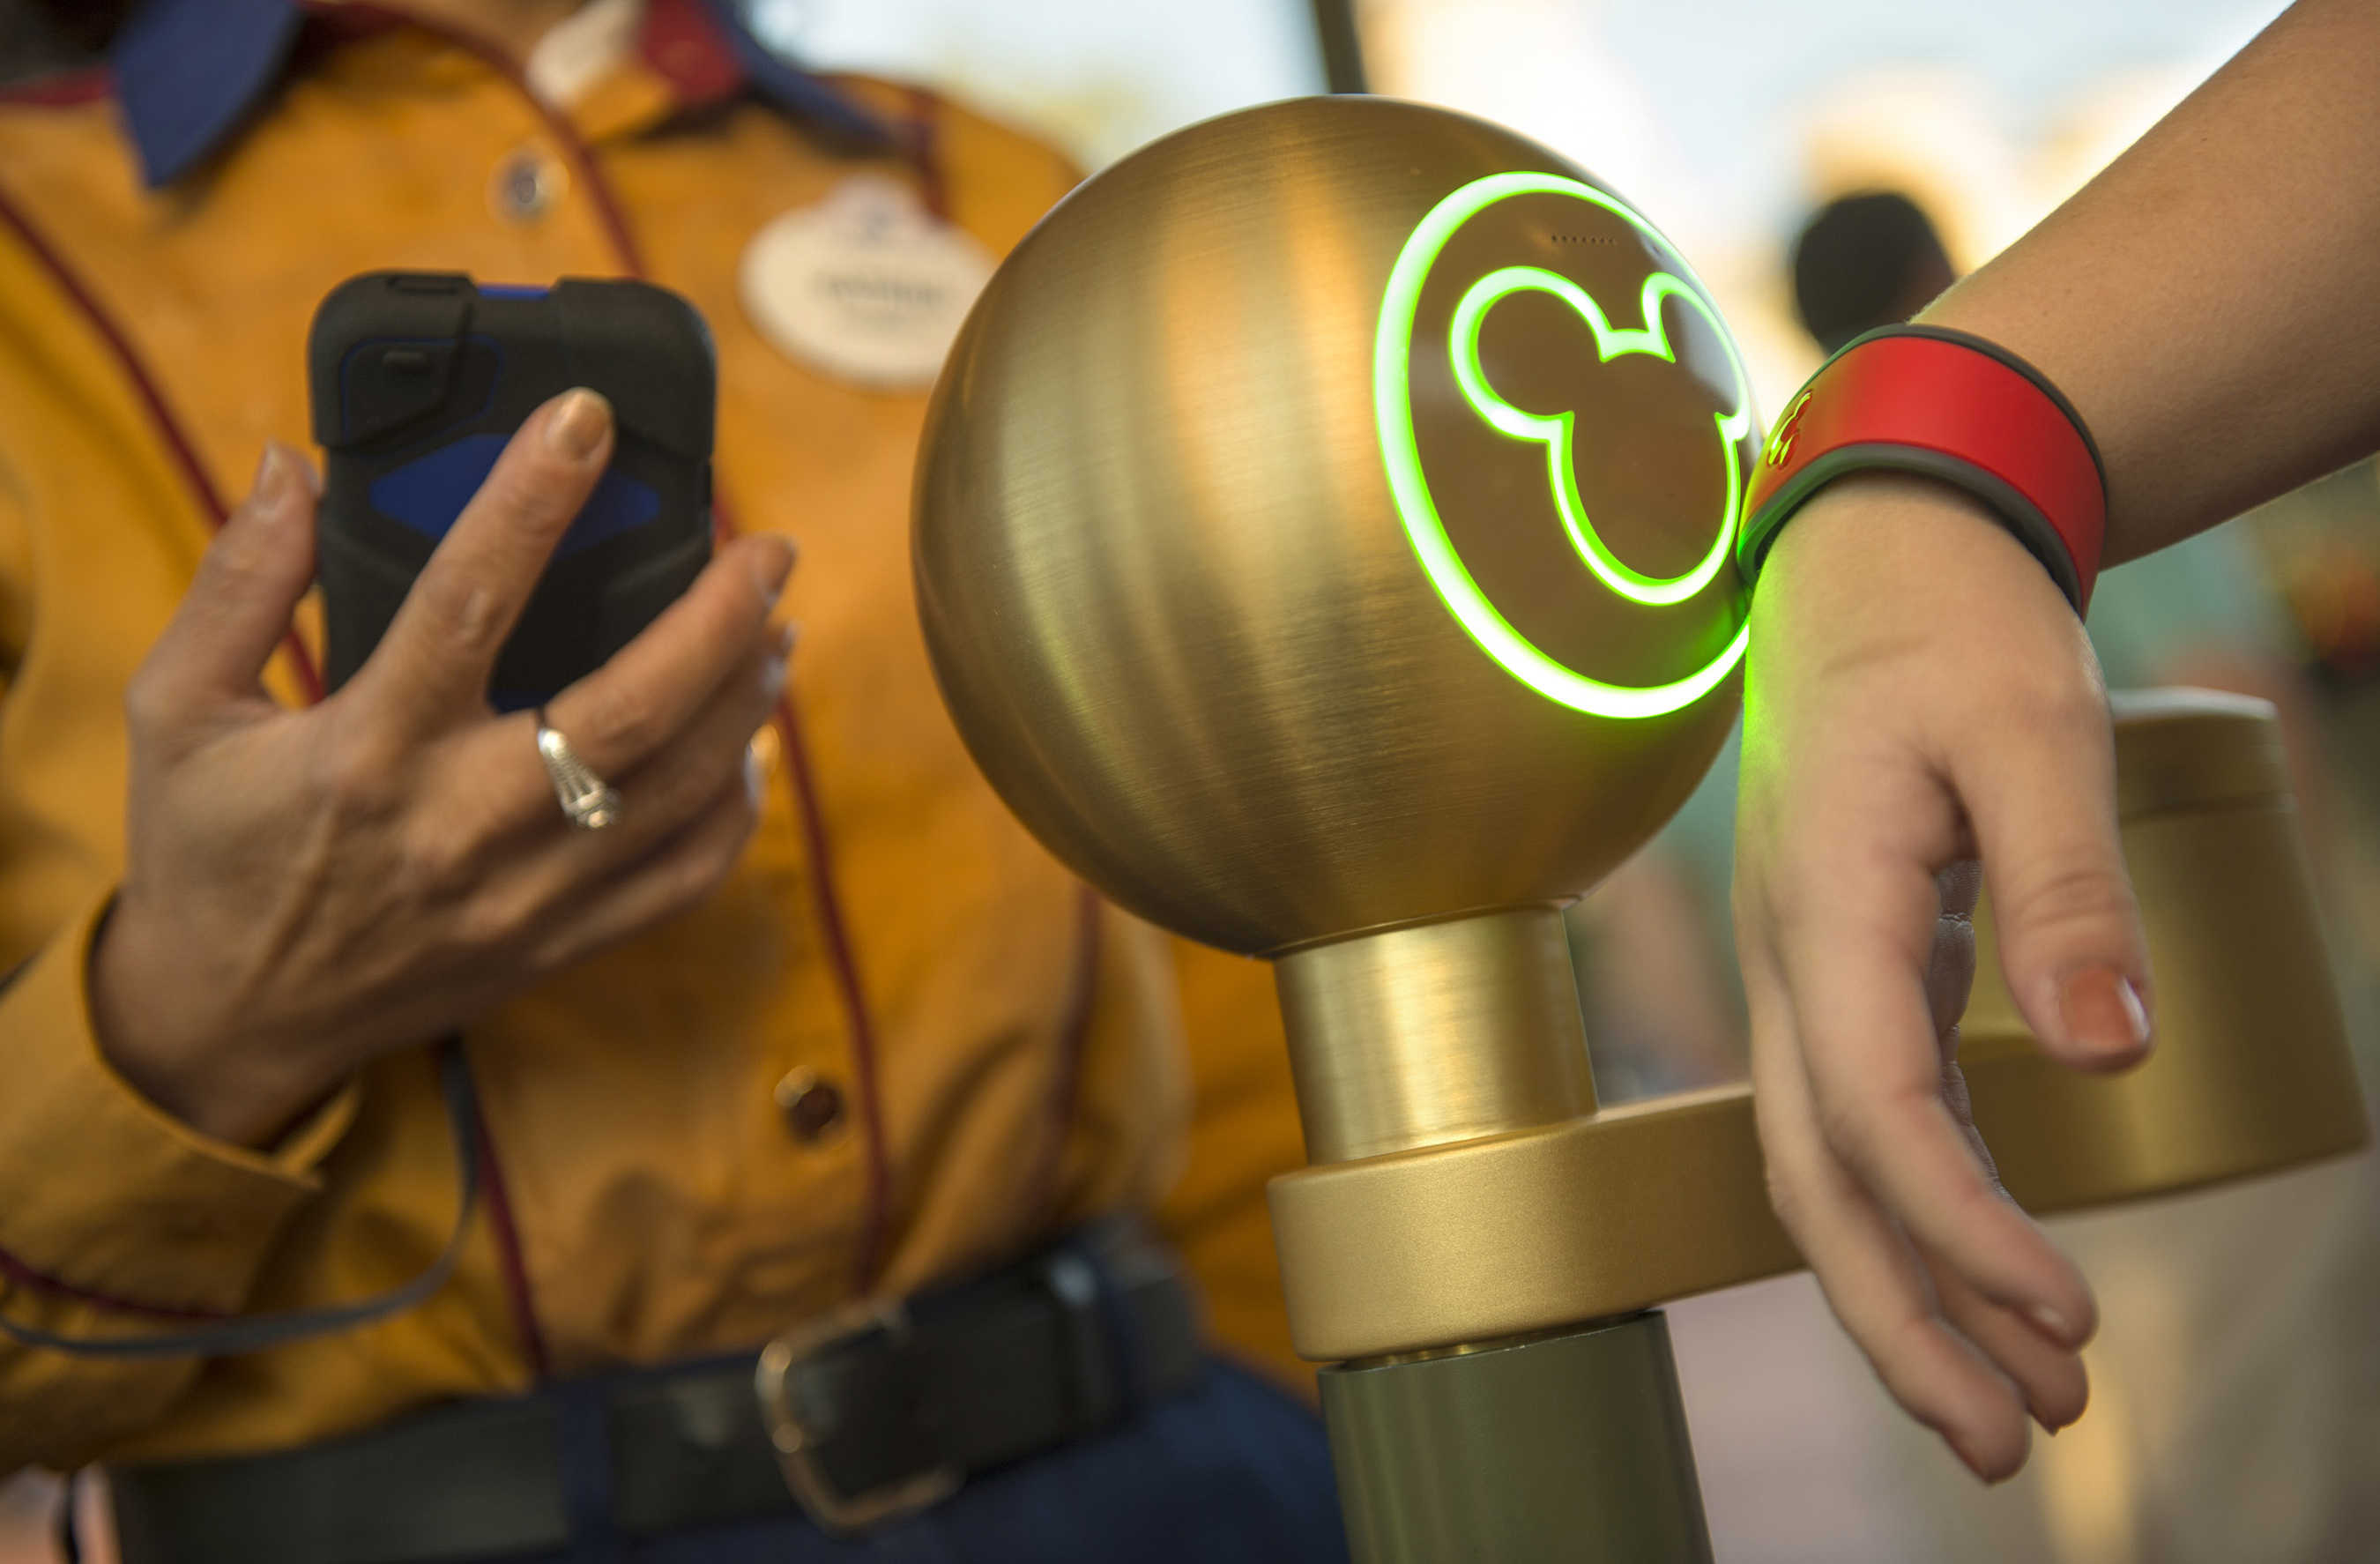 Walt Disney World rumored to raise ticket prices soon